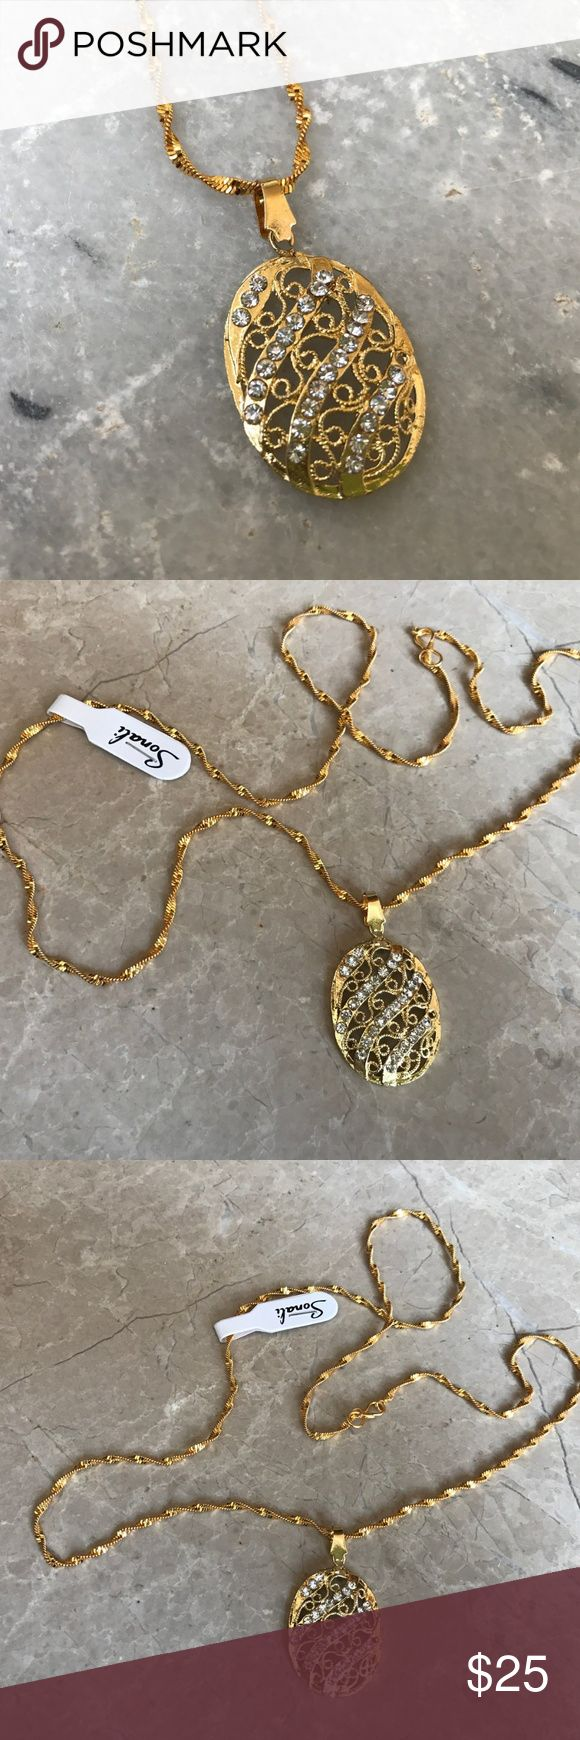 Women Pendant Necklace Gold Chain Neck Indian Mala Women's Pendant Necklace Gold Chain Neck Indian Mala Bollywood Traditional Jewelry  Color: Gold ( See the Photos )  Size: 24 Inches long Chain  NOTE: This is an artificial Jewelry and not real gold.   Brand New, Never Used Jewelry Necklaces